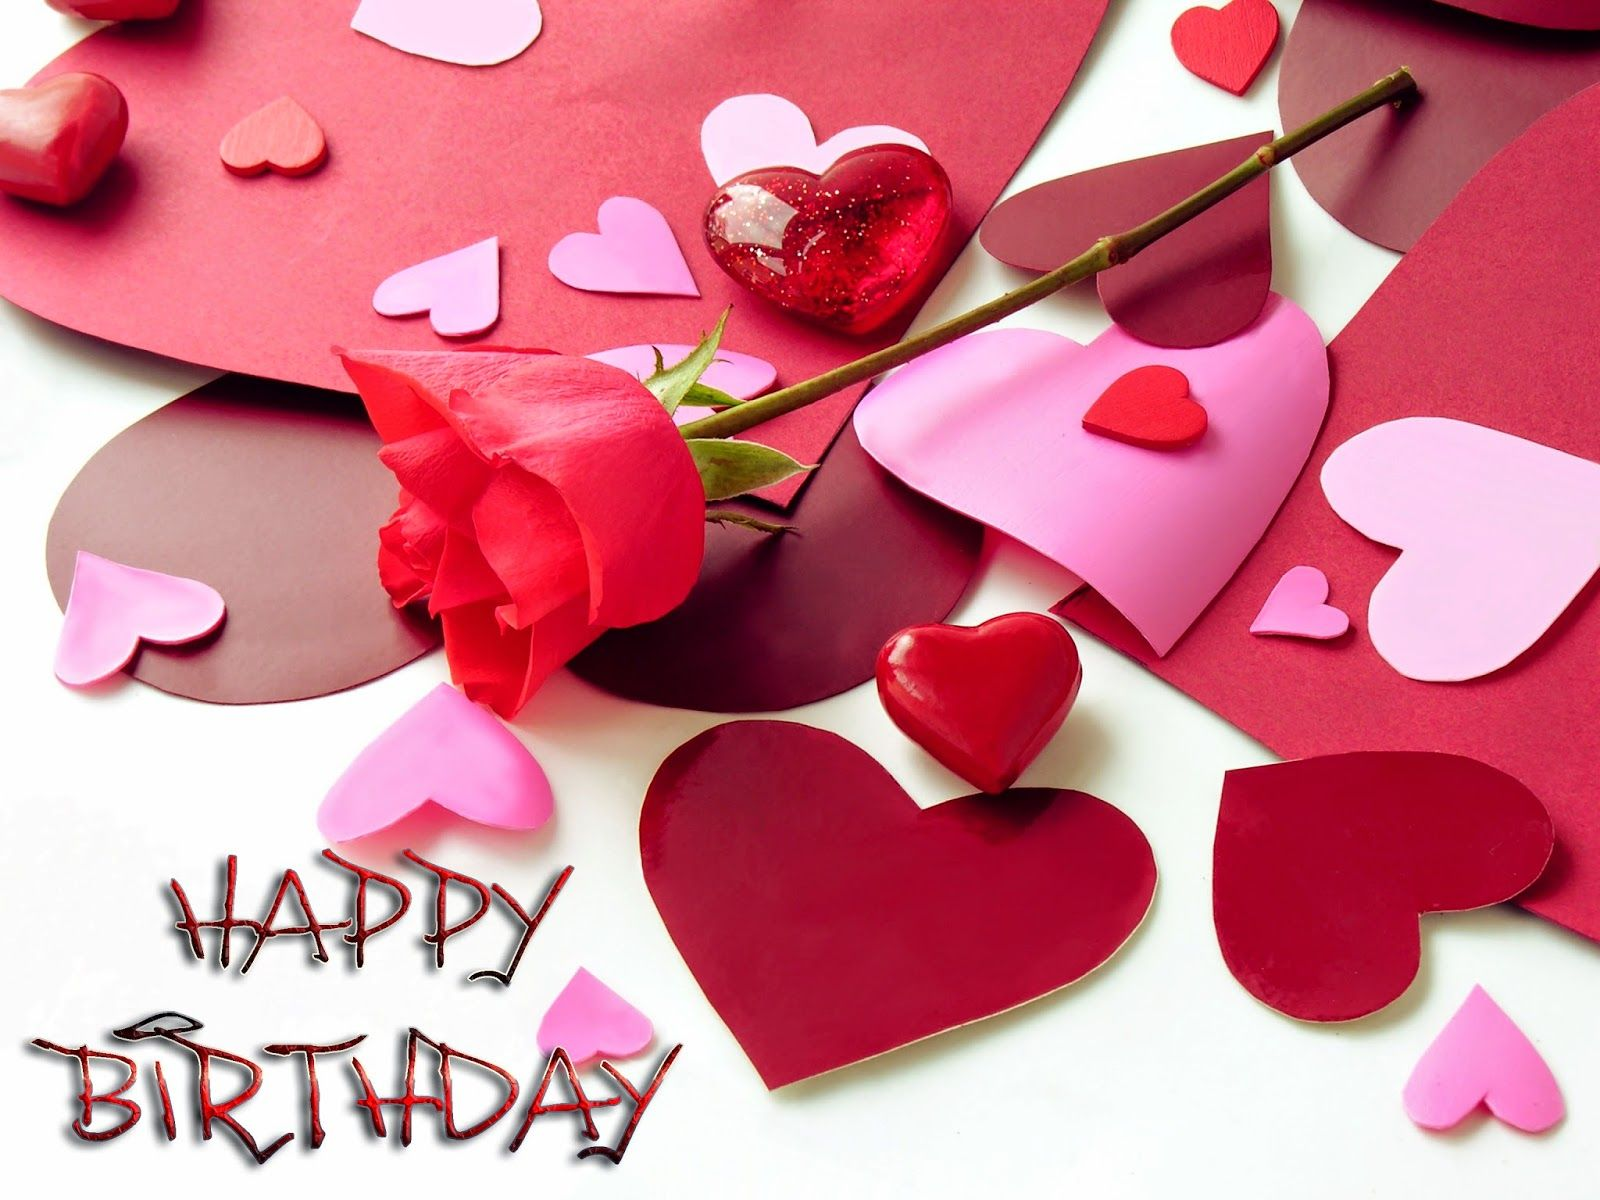 birthday wallpaper free download for mobile ; birthday_wishes_for_lover_